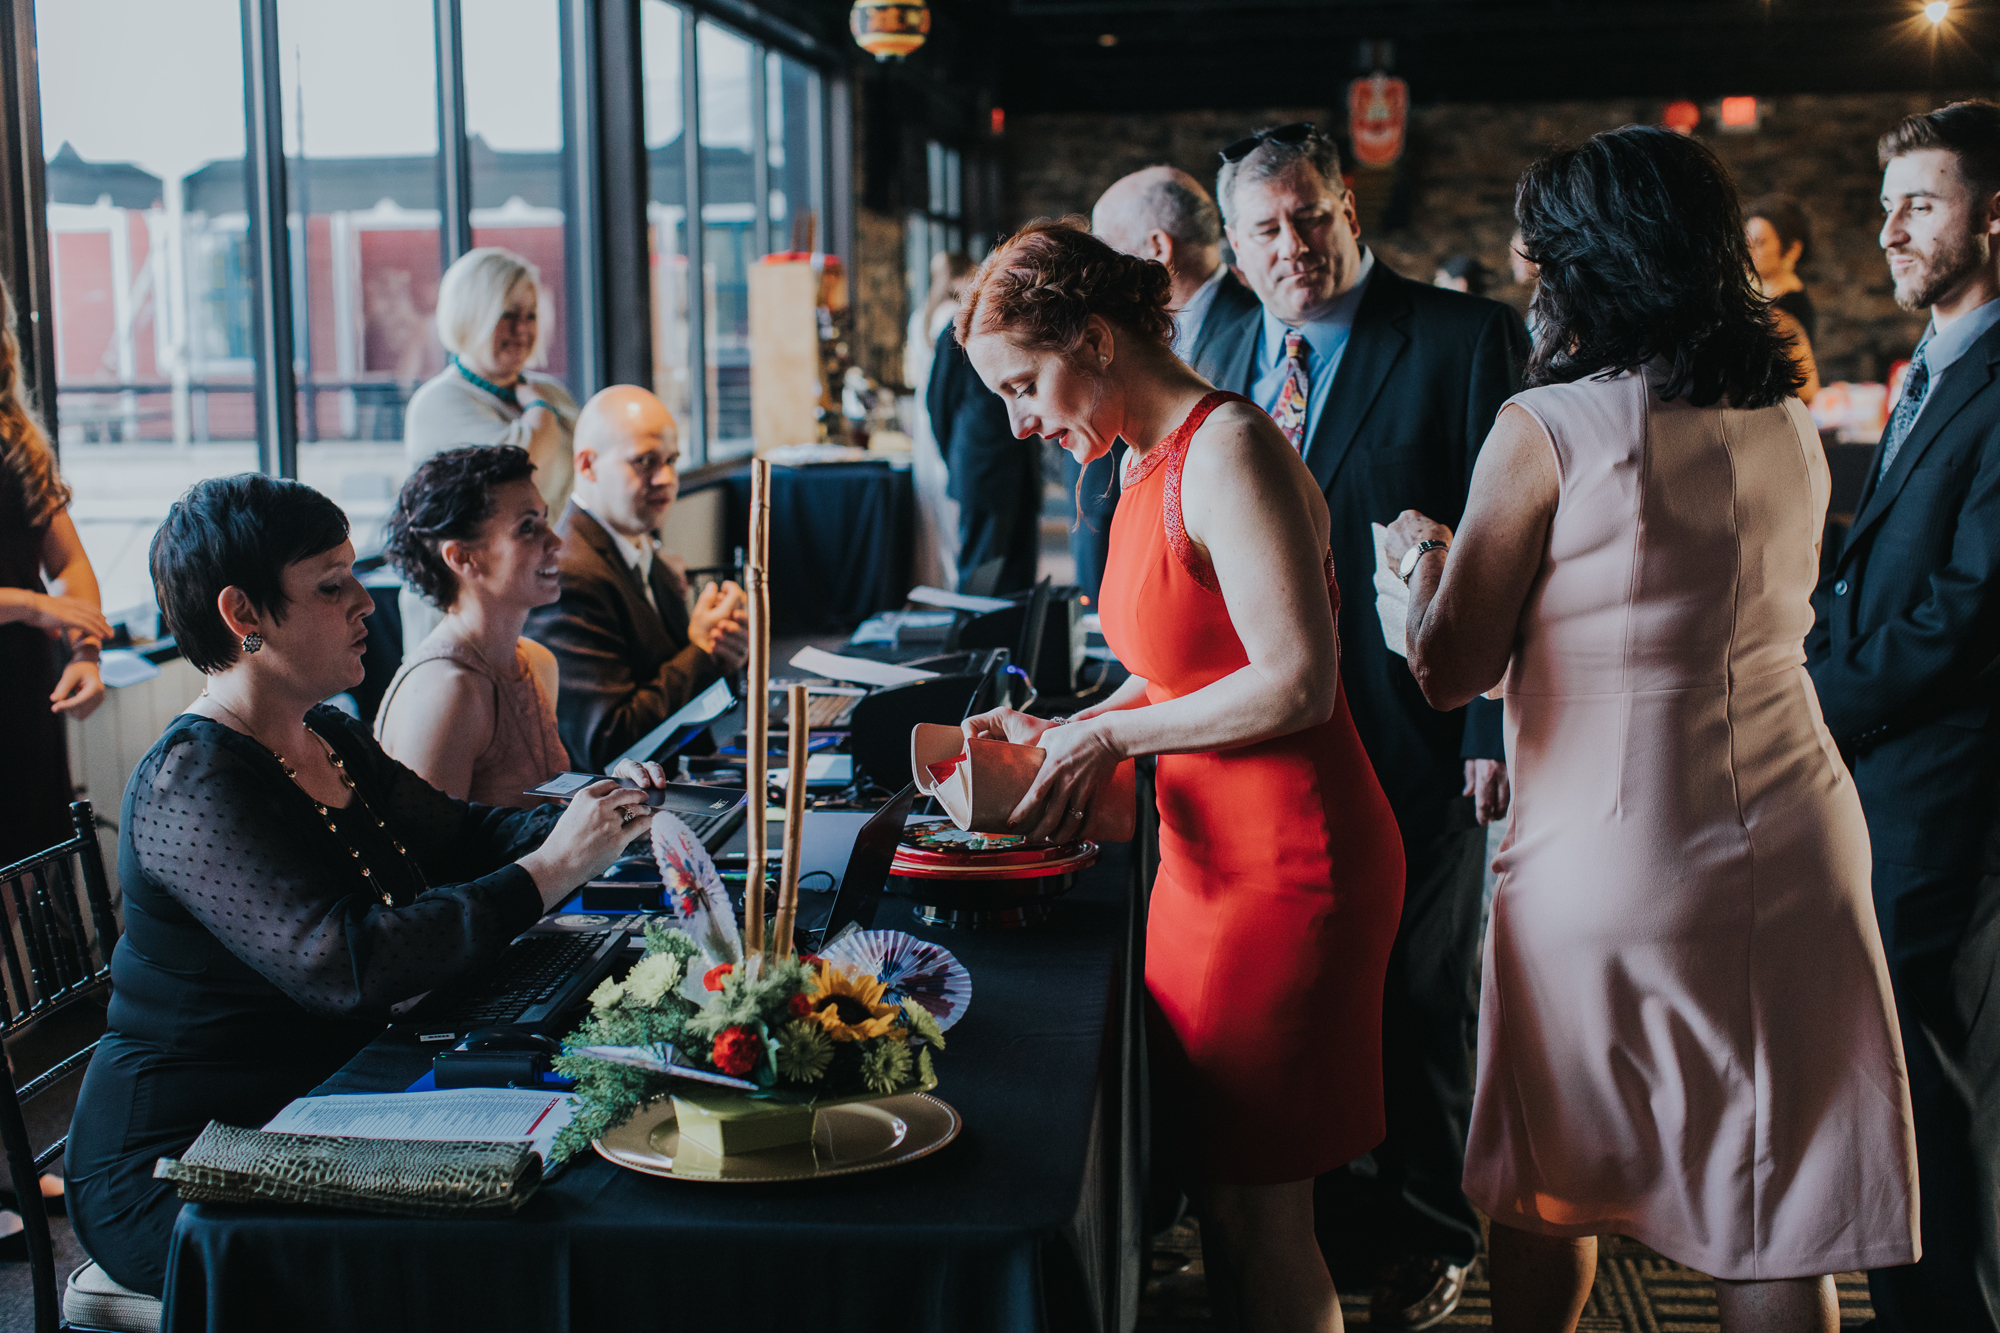 jdrf-passport-to-a-cure-gala-pennsylvania-2017